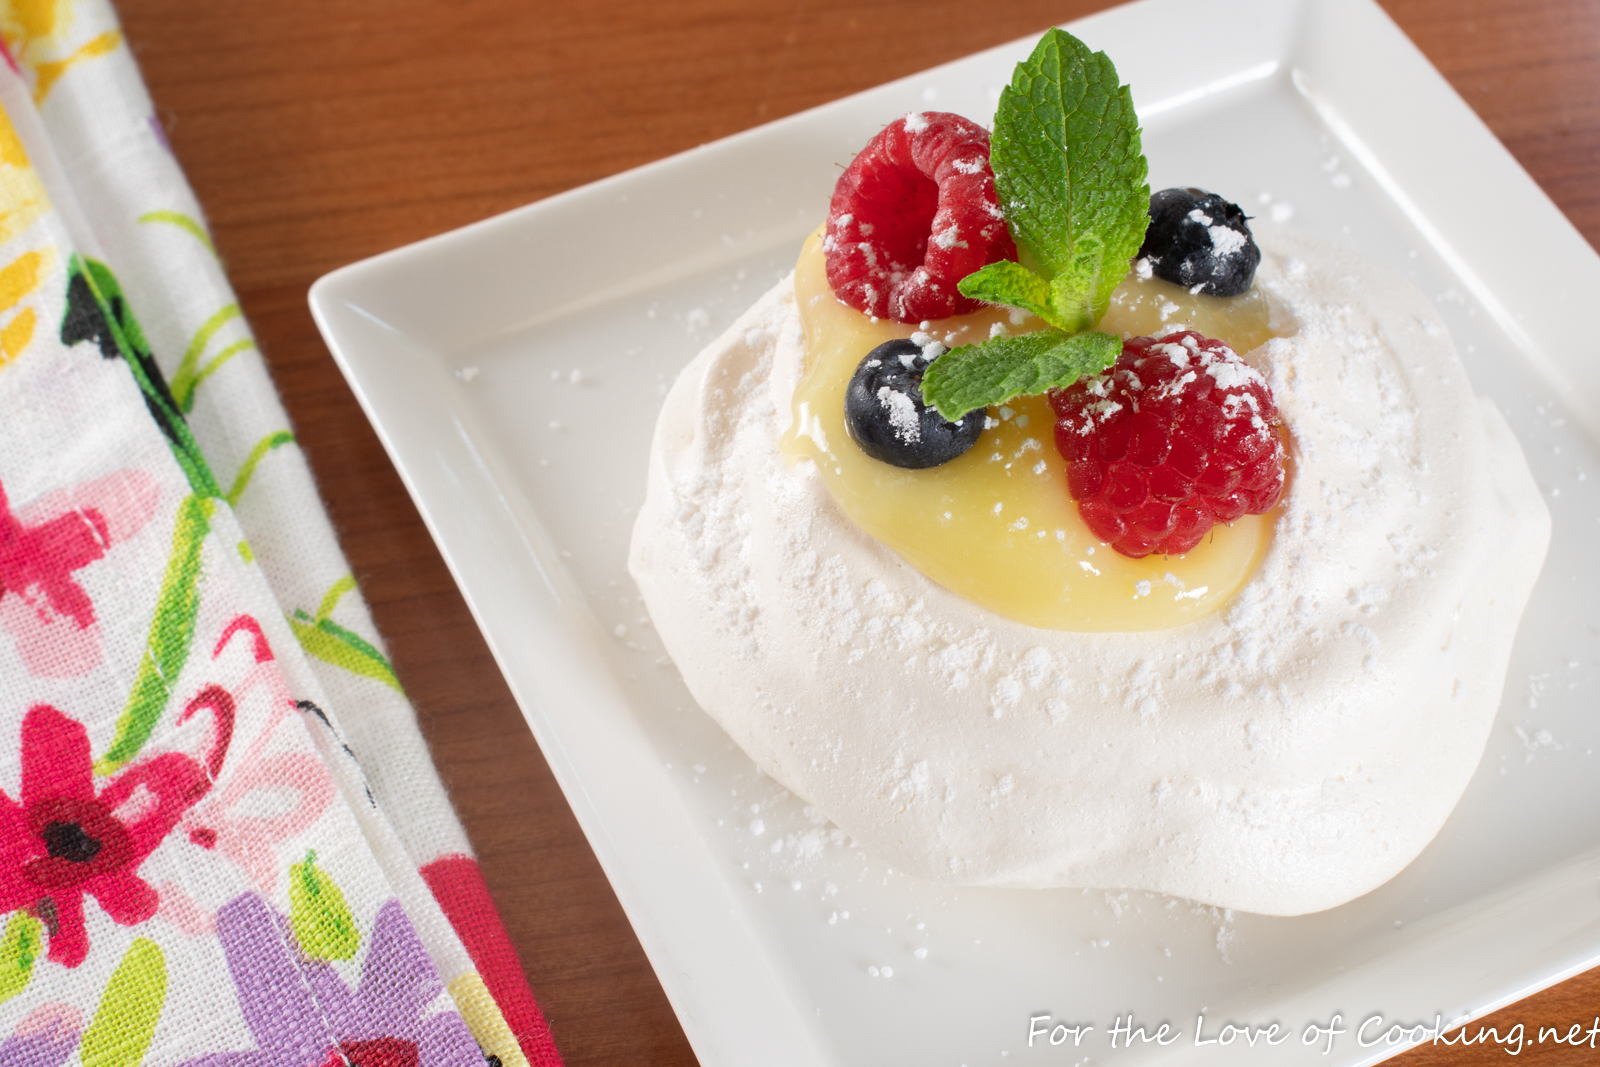 Mini Pavlova with Lemon Curd and Fresh Berries